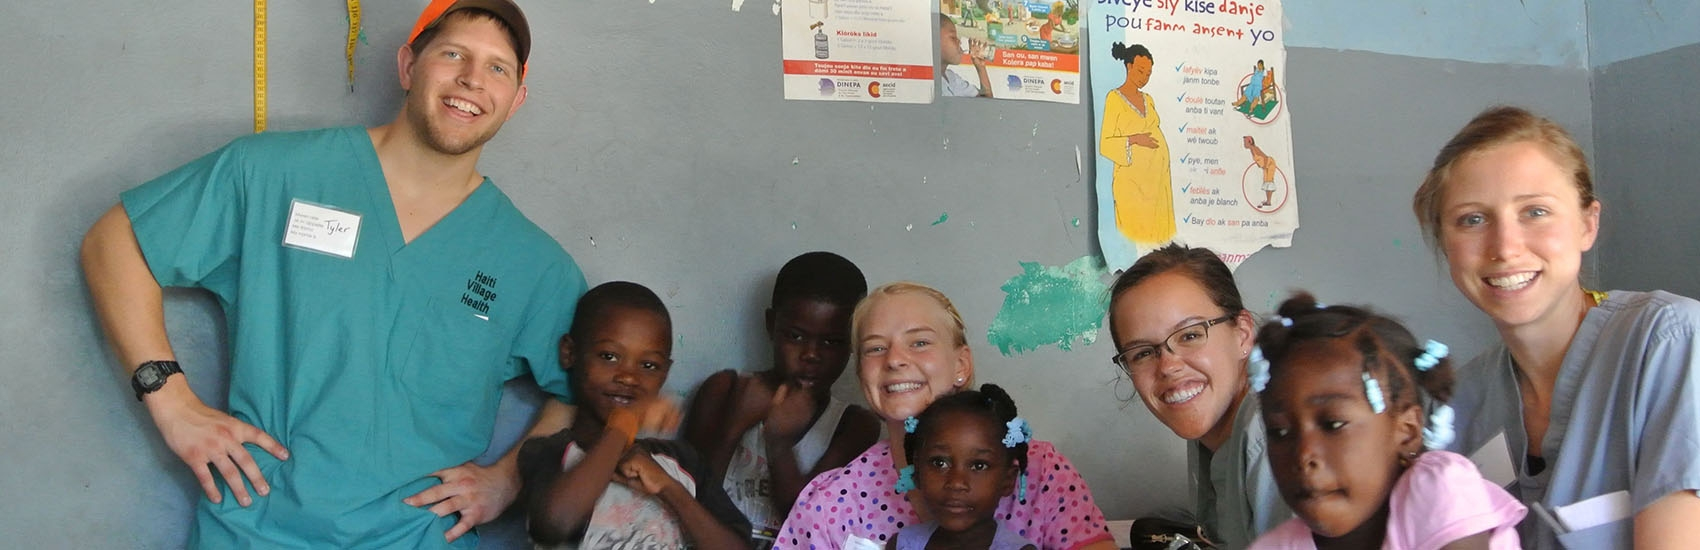 USF students on a mission trip to Haiti.